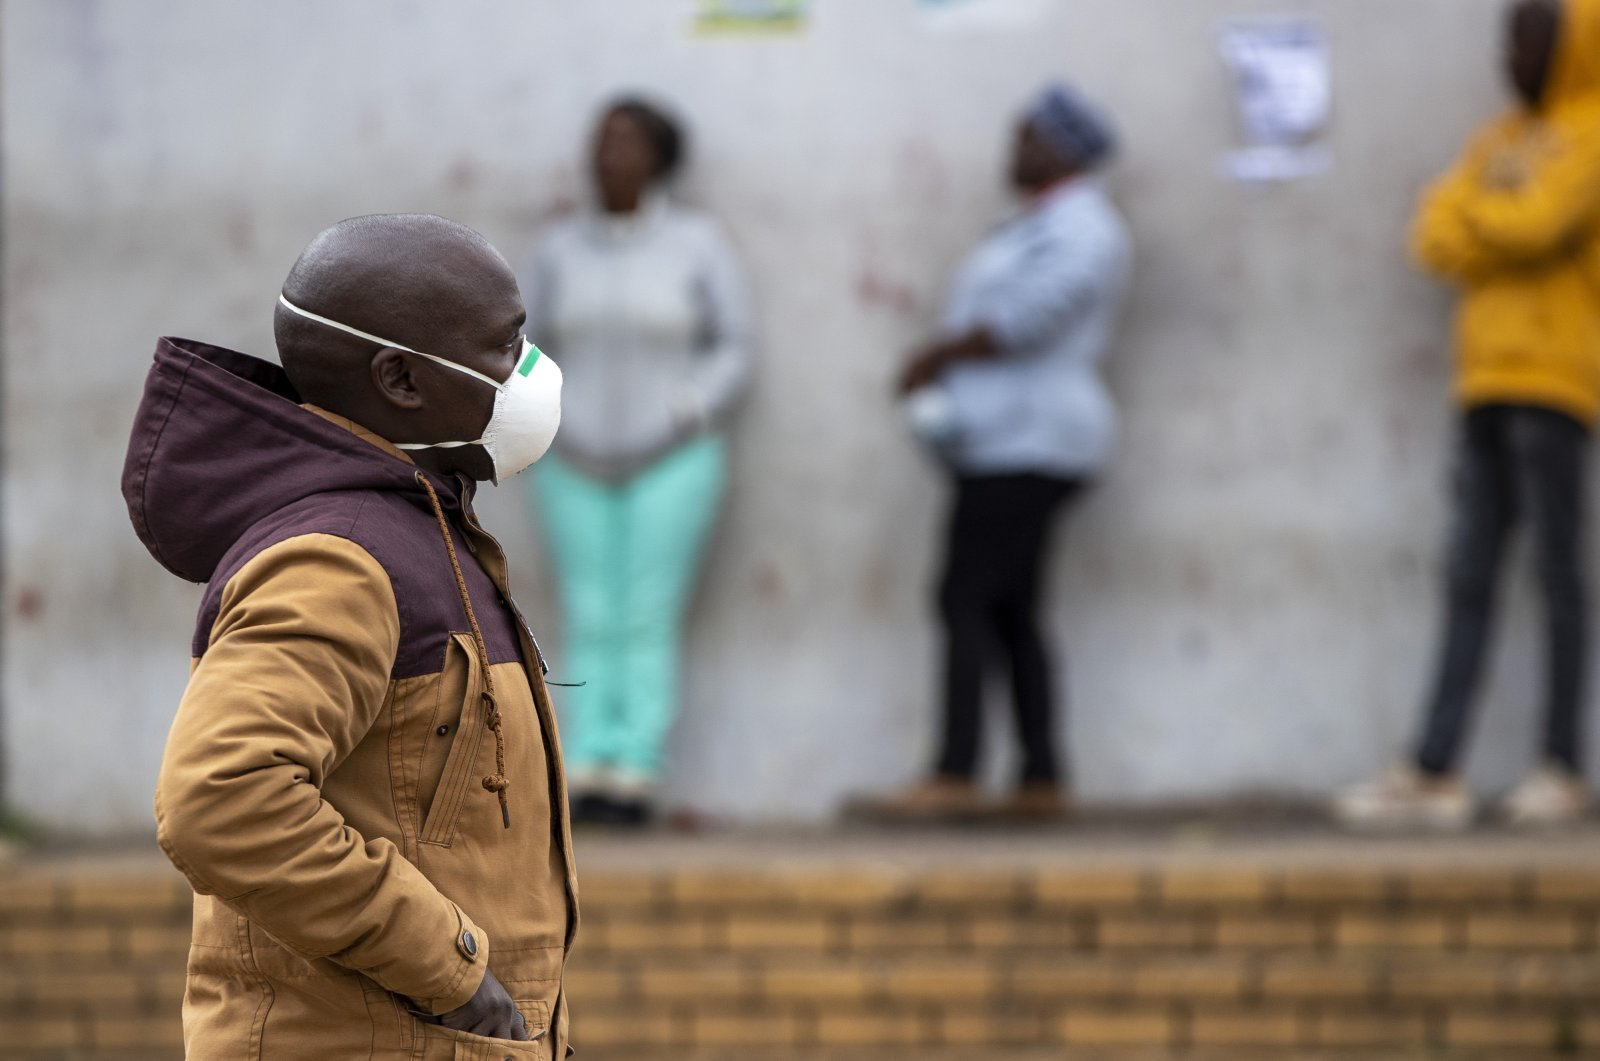 A man wearing face masks to protect himself against coronavirus, walks past people queuing for shopping in Duduza, east of Johannesburg, South Africa, Thursday, April 2, 2020.  (AP Photo)